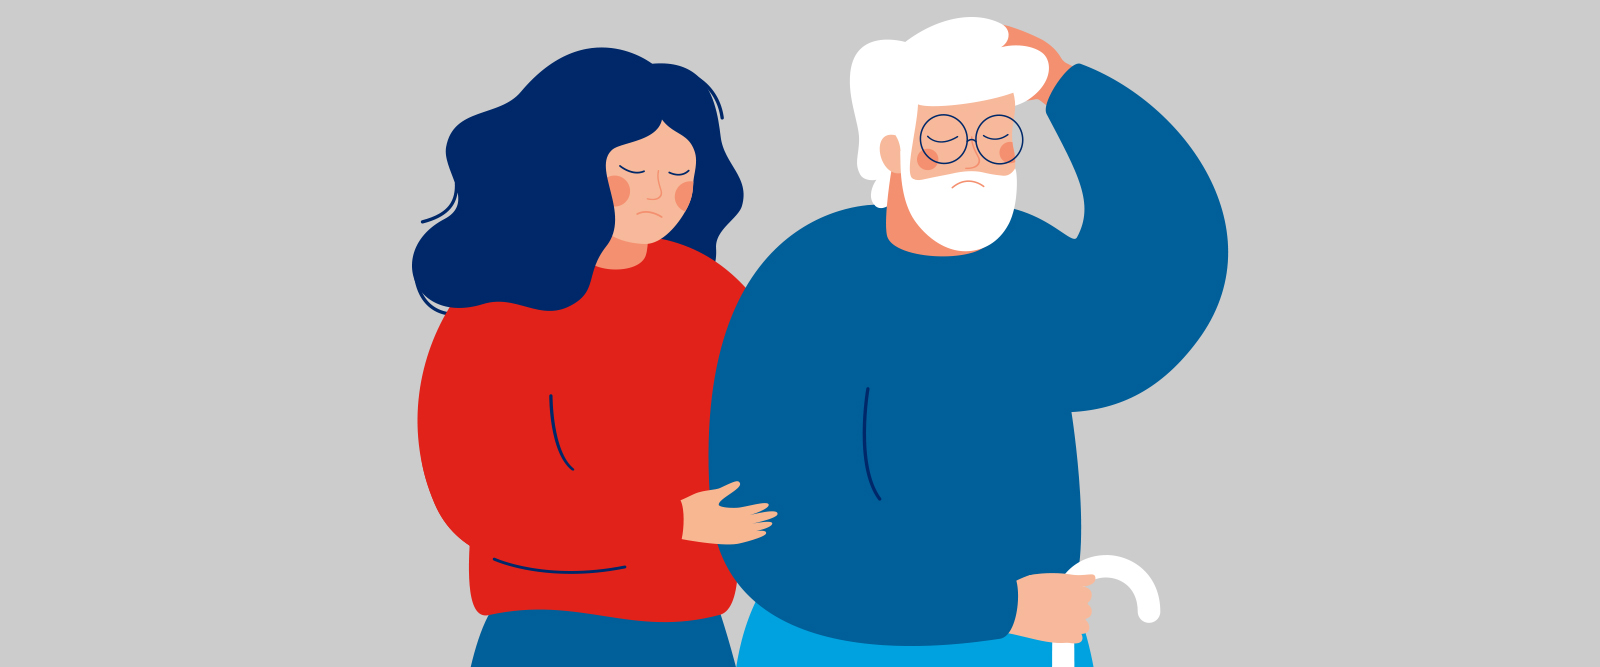 Illustration of woman helping elderly man who is injured